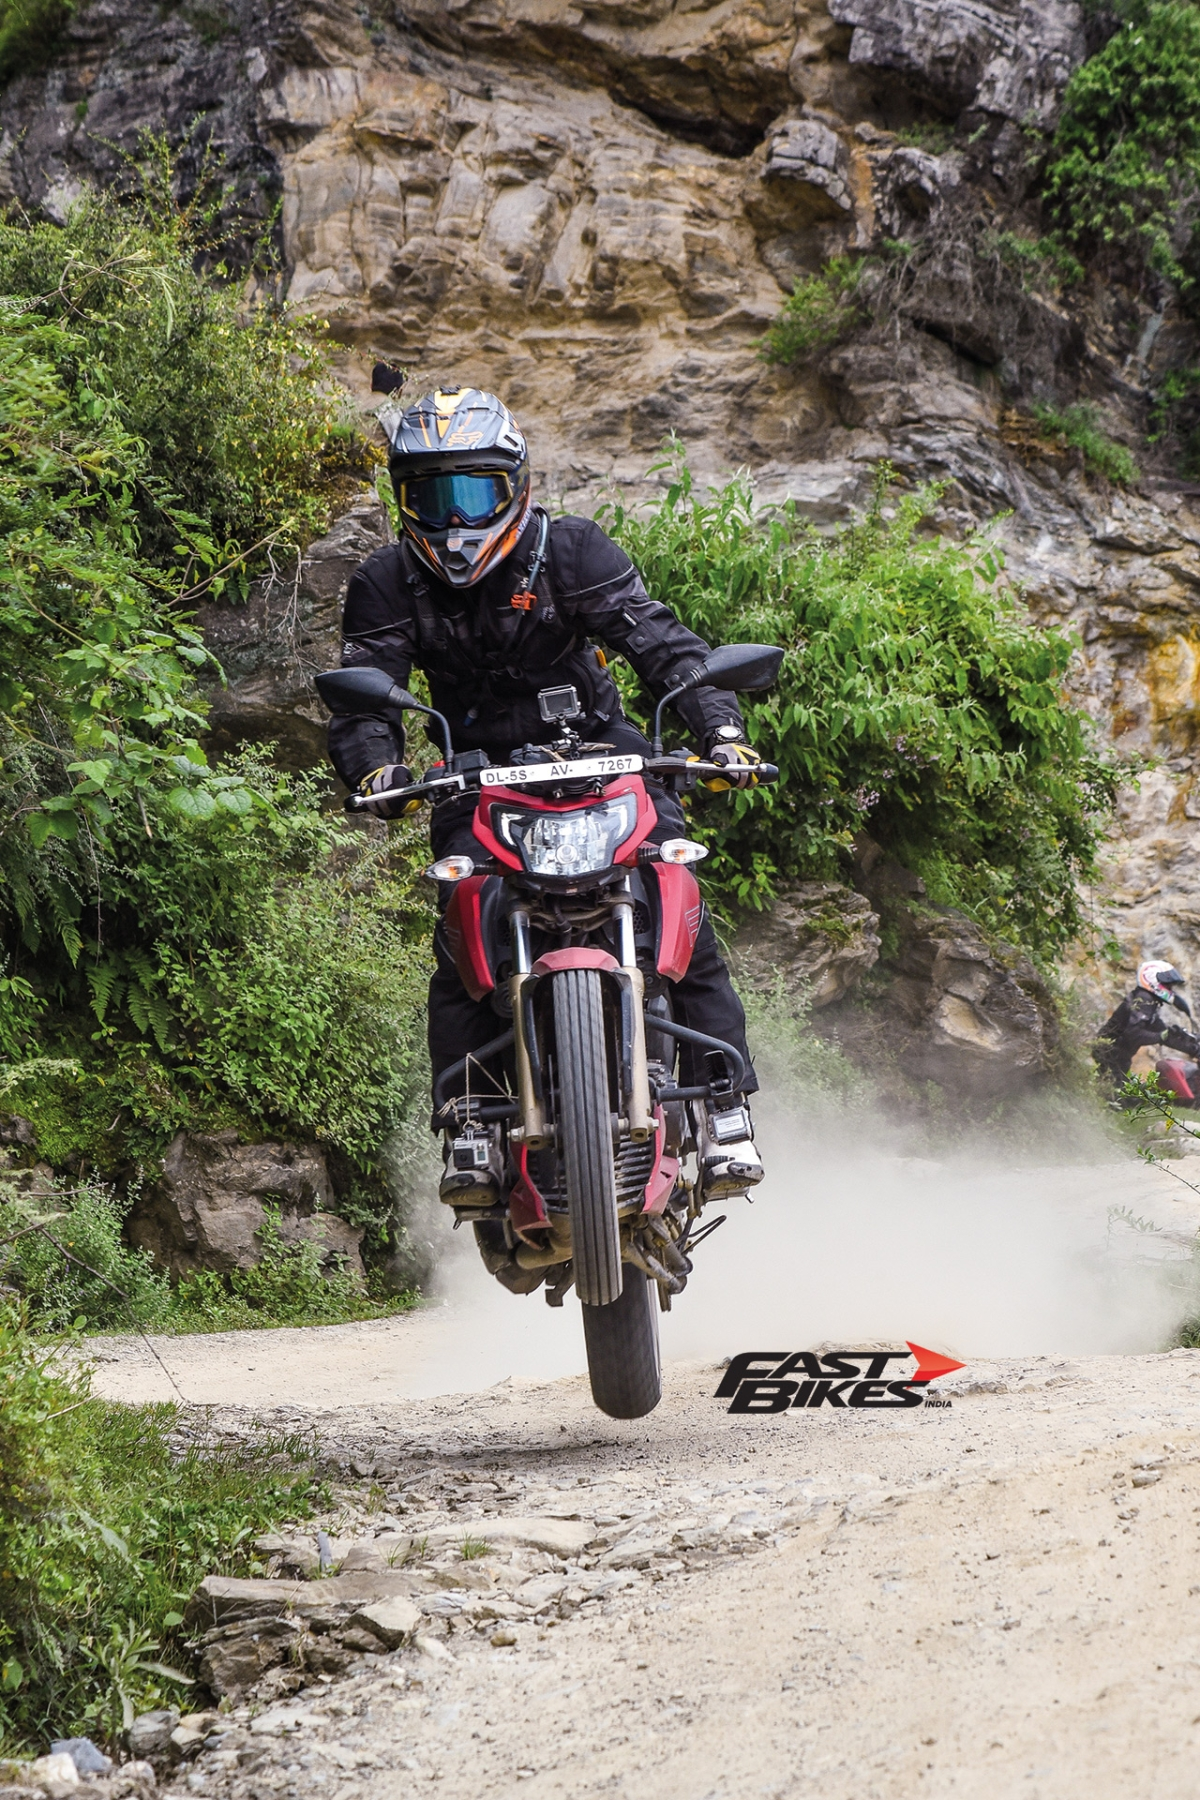 Jumps, wheelies and more… Here you'll get what you want